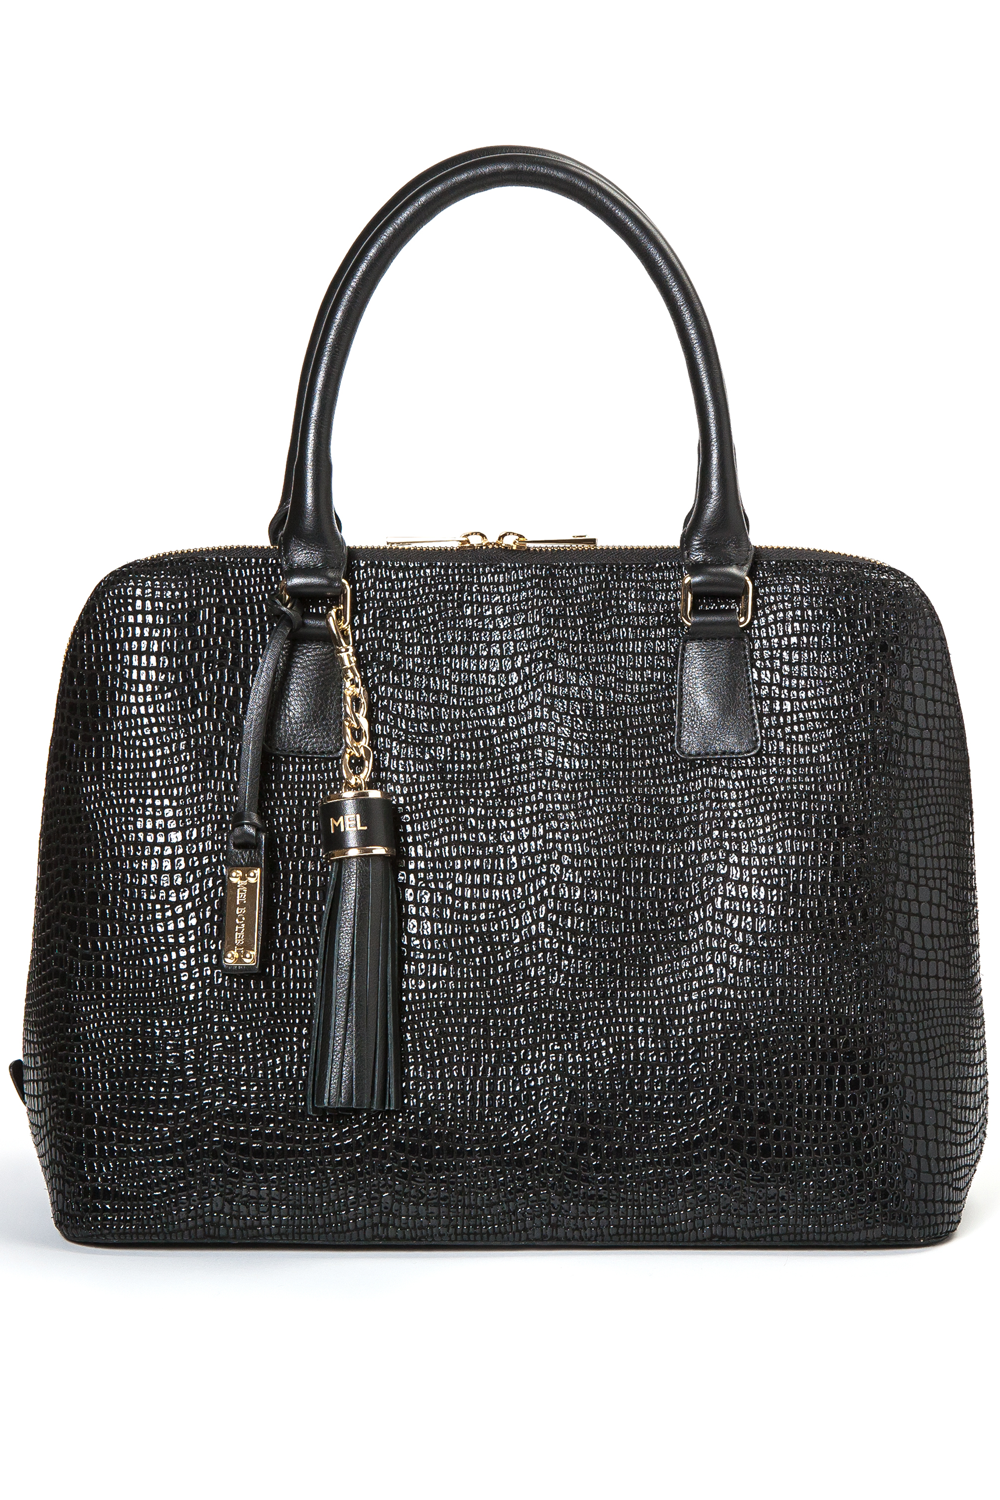 Mel Boteri | High Gloss, Black Lizard-Print Leather 'Watson' Tote | Front View